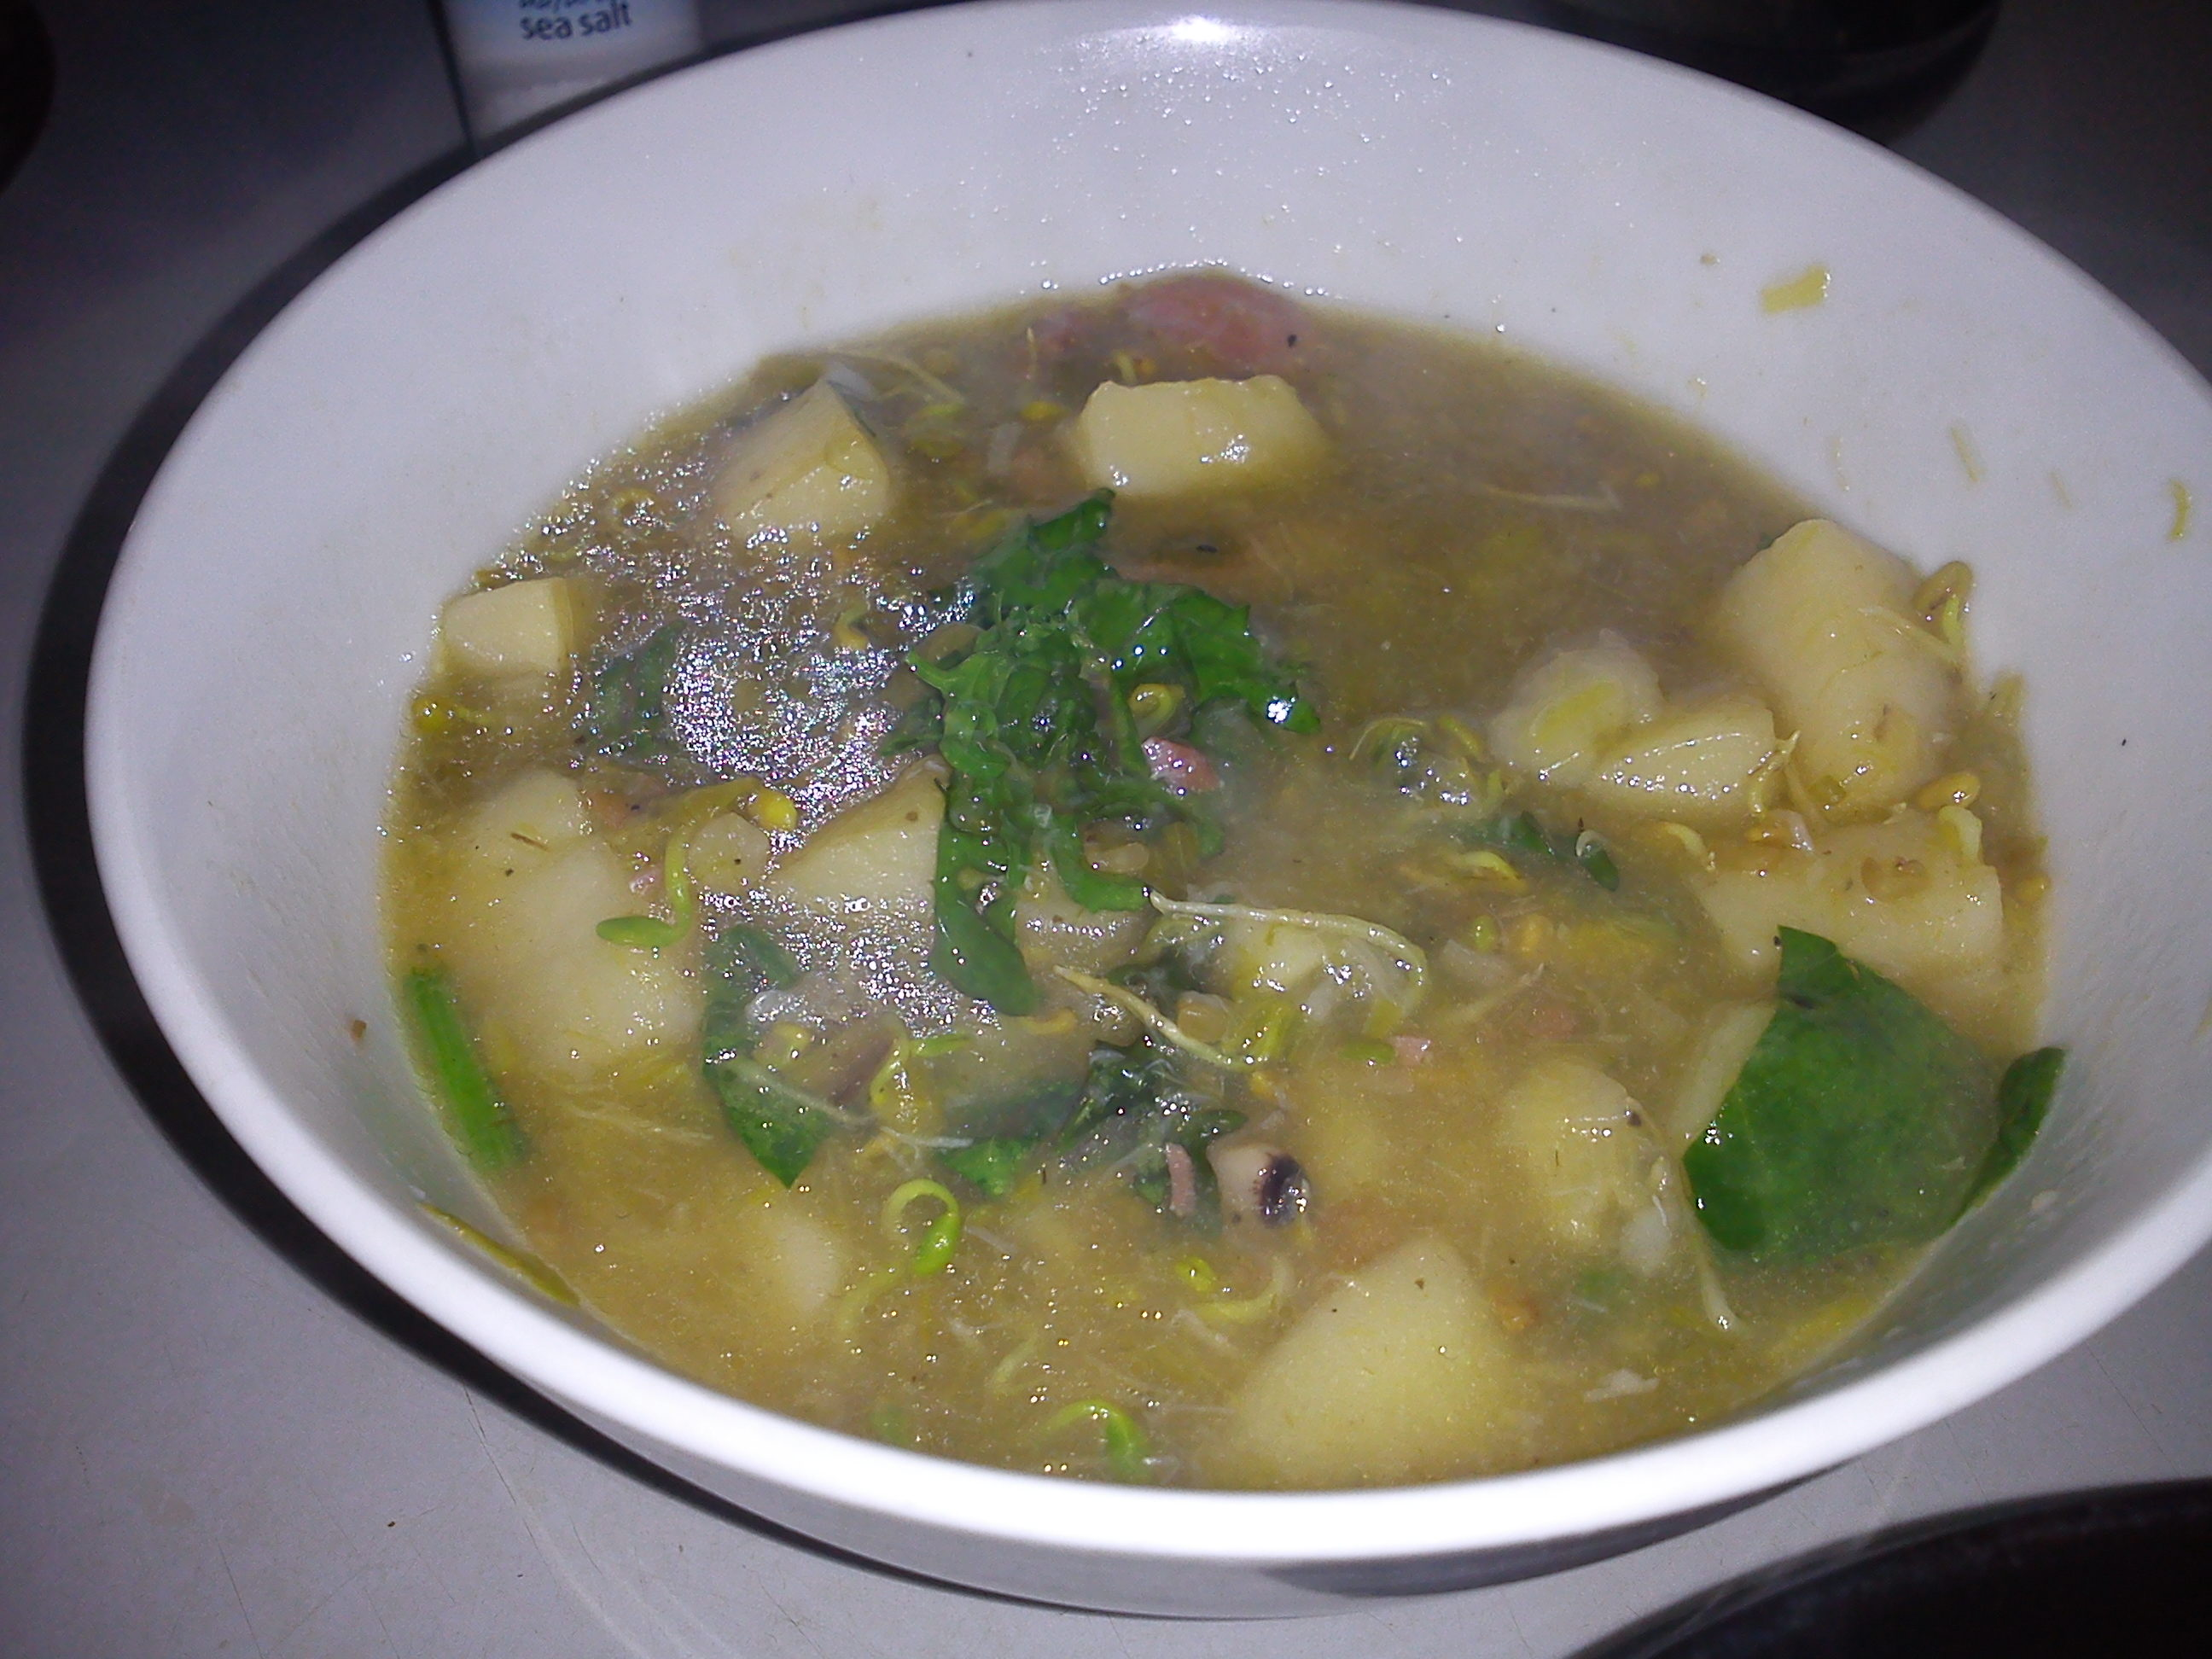 Leafy Greens in Soup | goldcoastgardendiary